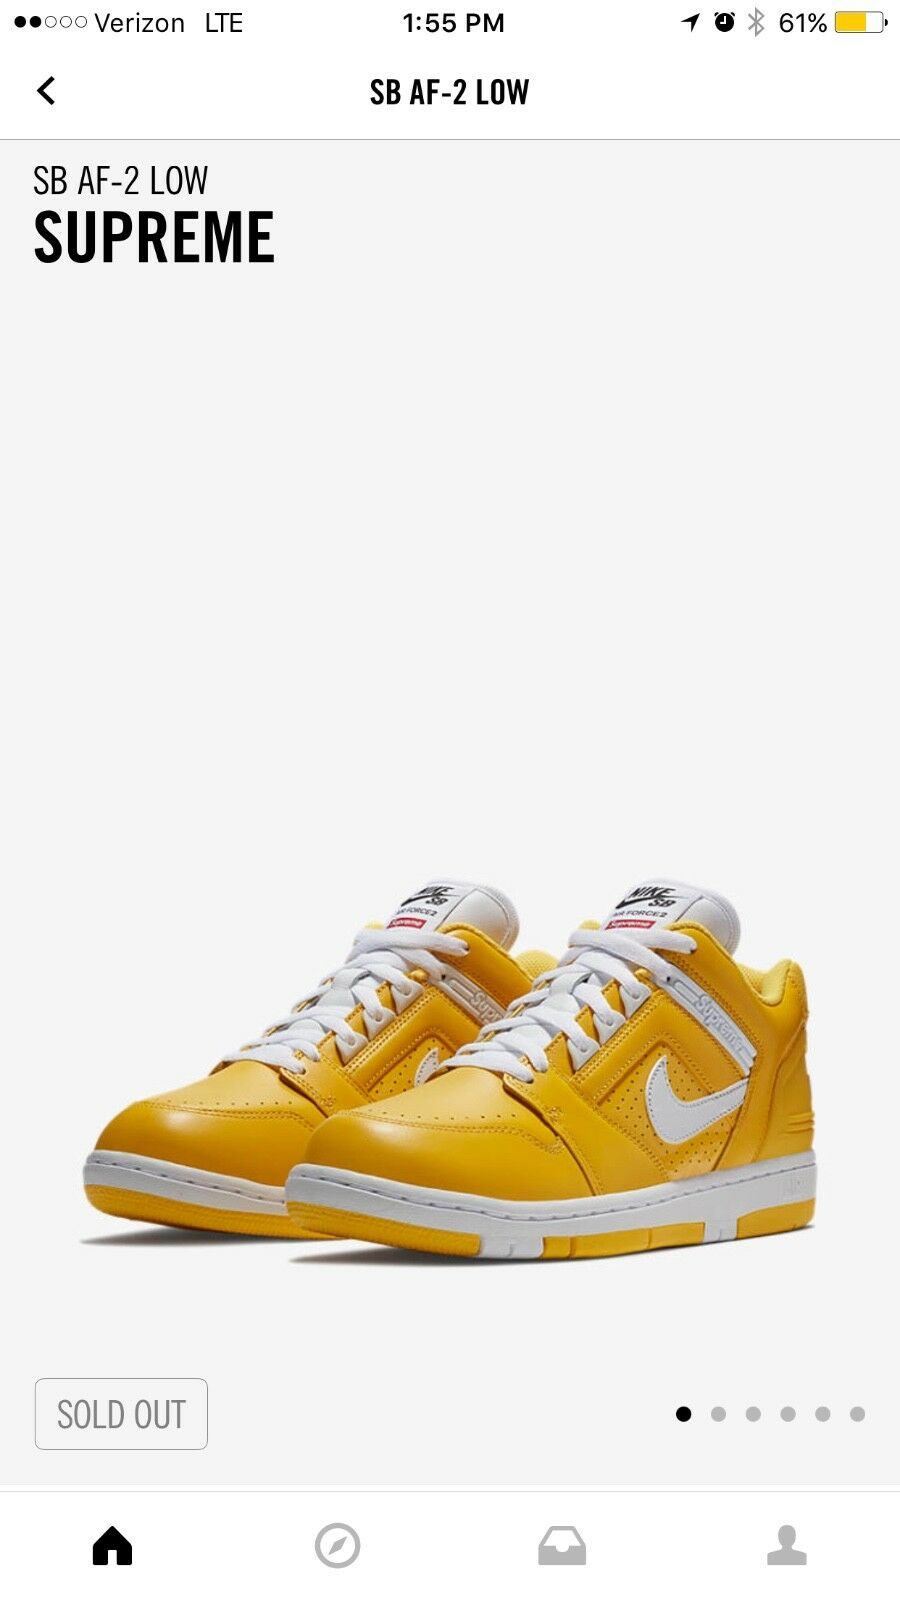 Supreme / Nike SB Air Force 2 YELLOW SIZE 10 *NEW DROP* *FALL 2017* *Confirmed*